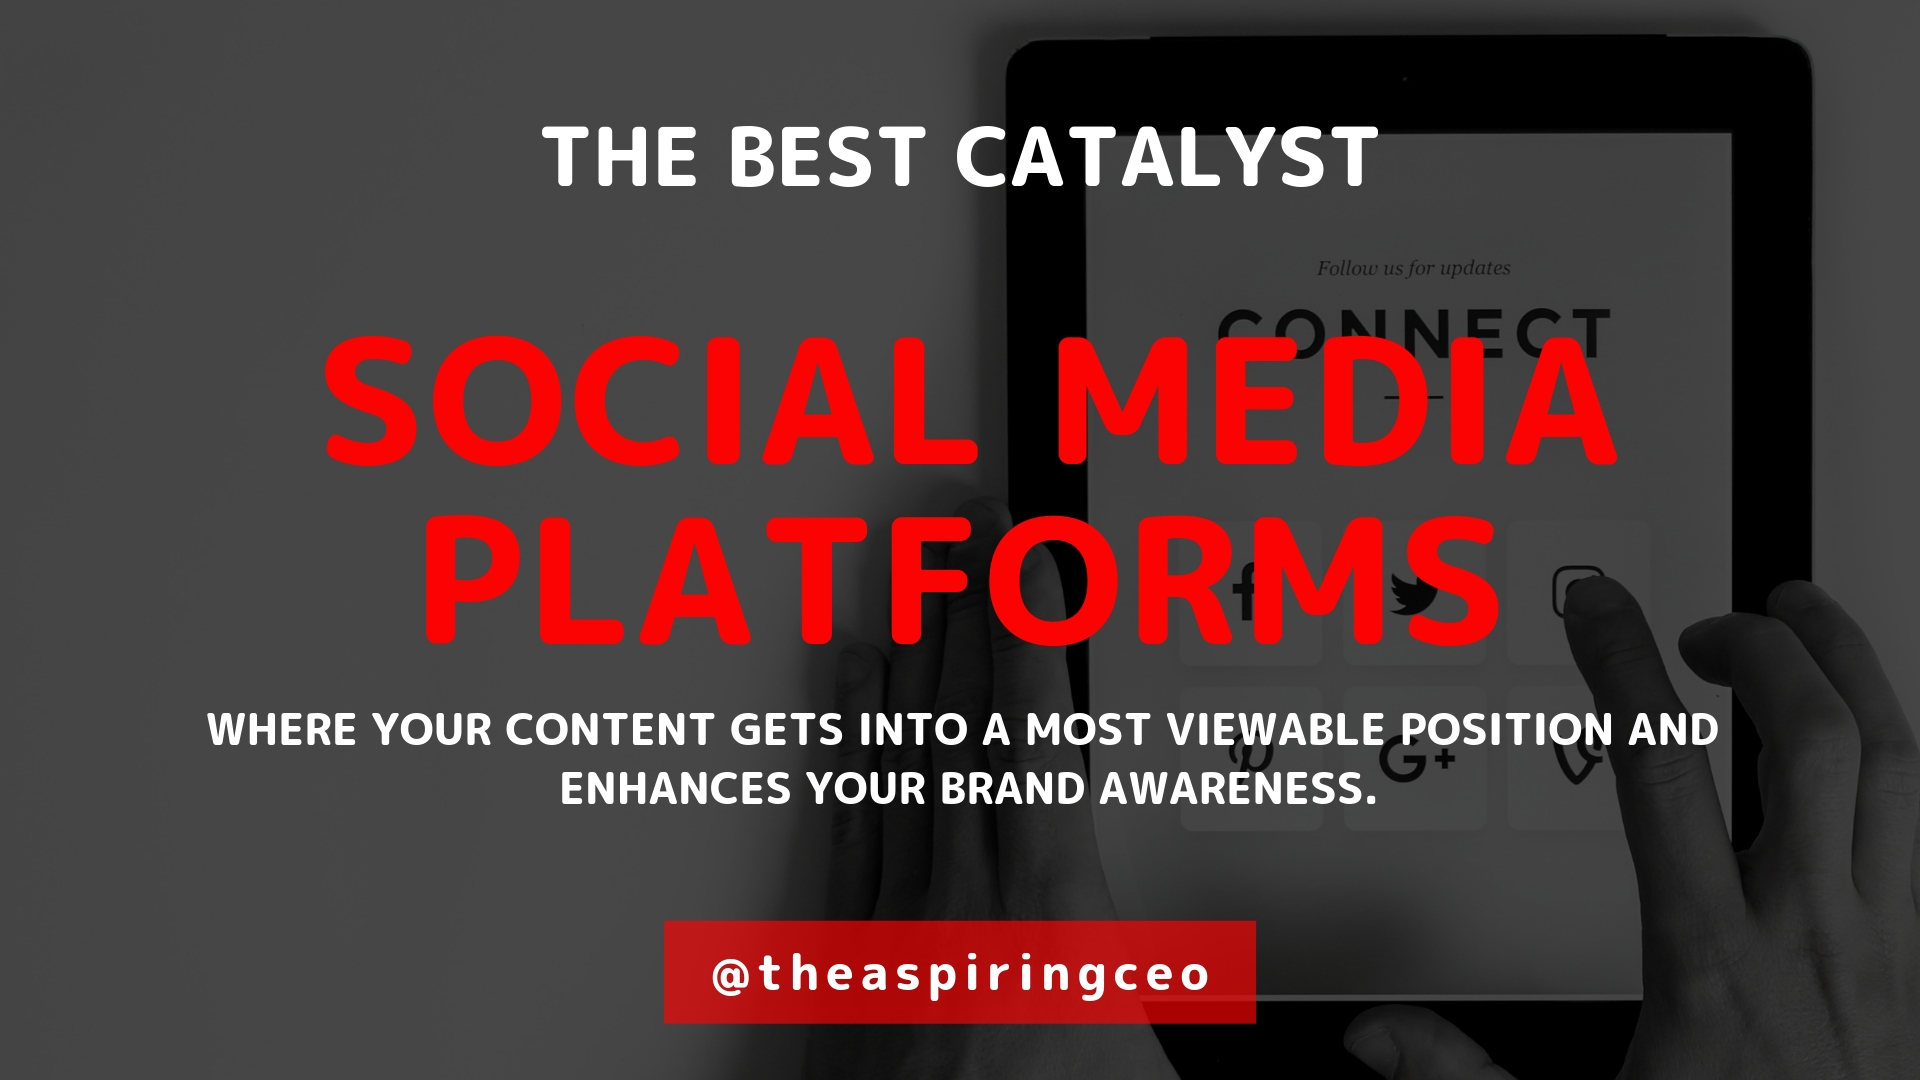 BASIC PLATFORMS ON WHICH CONTENT MARKETING THRIVES